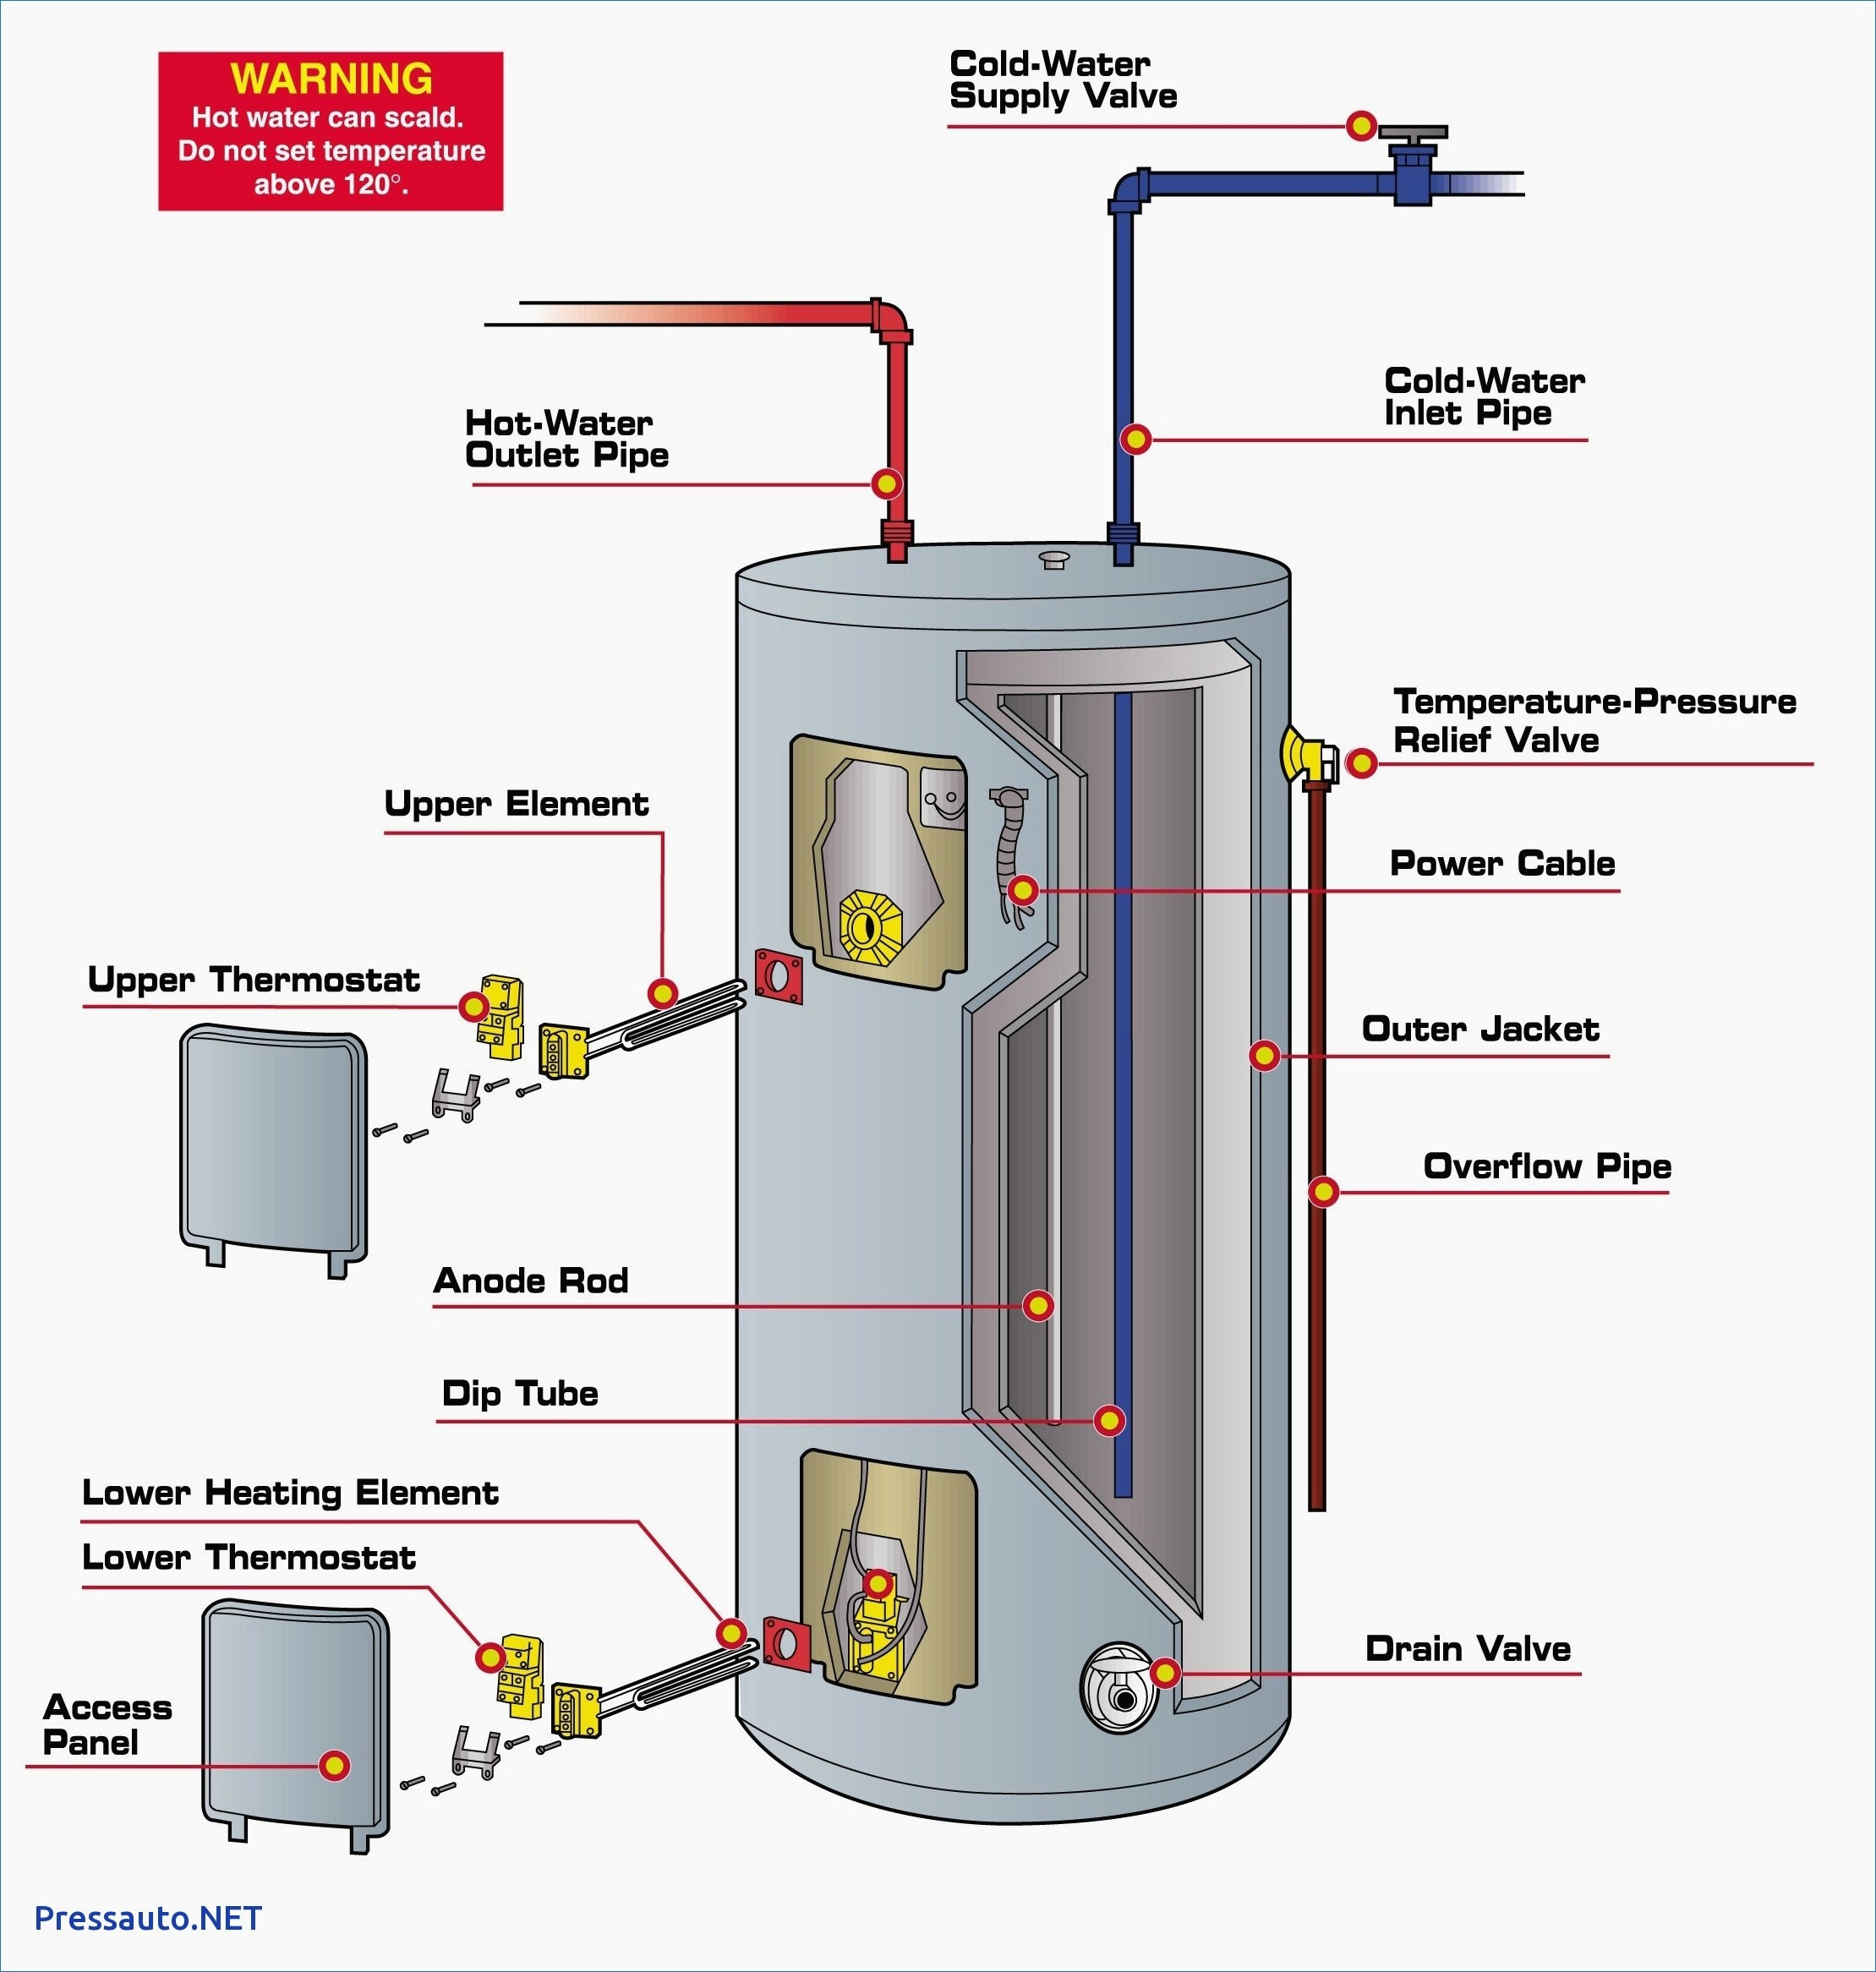 Diagram Gas Water Heater Wiring Diagram Full Version Hd Quality Wiring Diagram Electrocardiagram Belleilmersion Fr